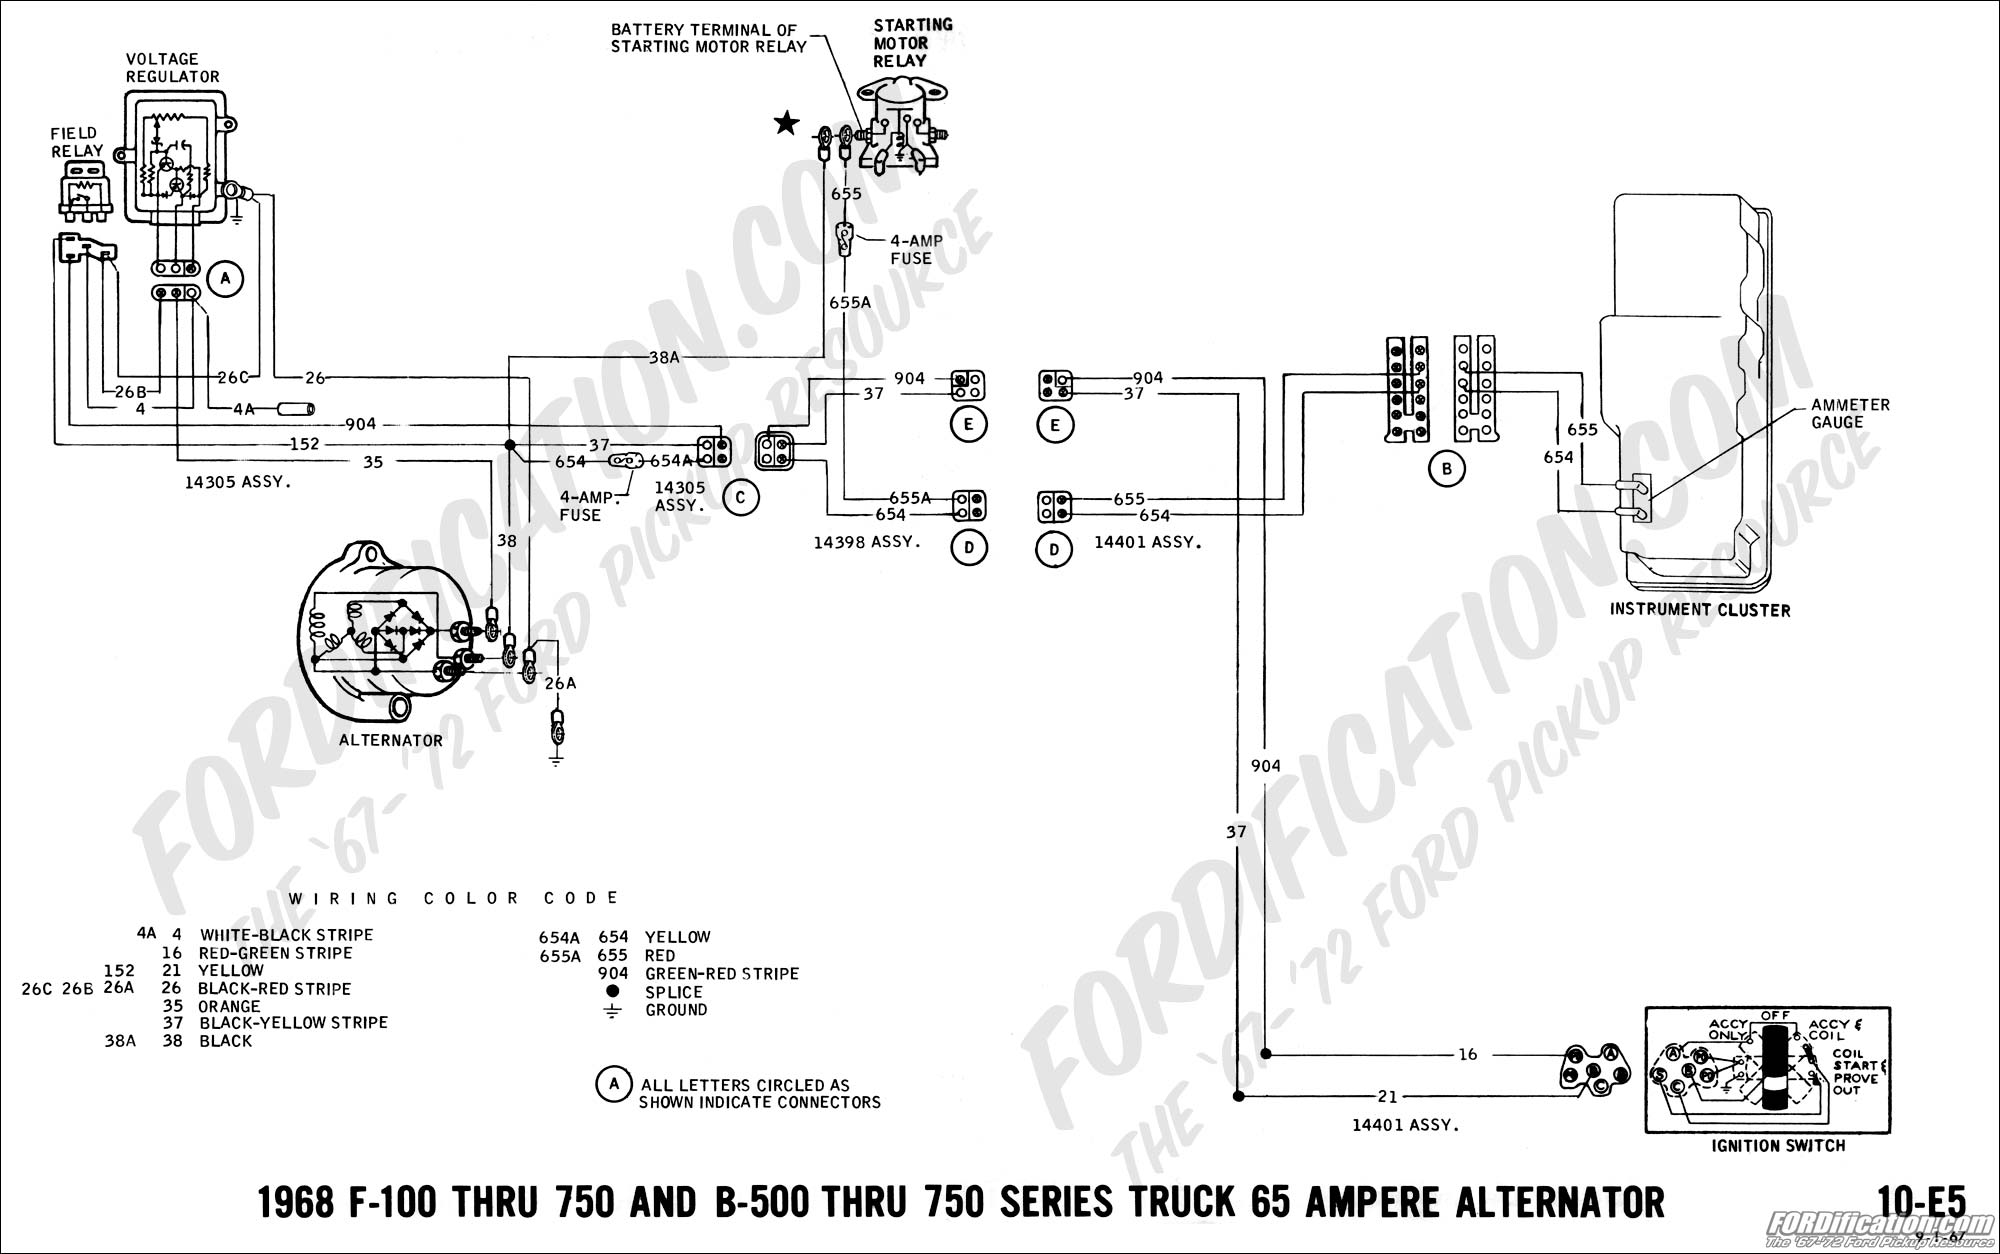 68 07 ford truck technical drawings and schematics section h wiring 1971 ford f250 wiring diagram at crackthecode.co